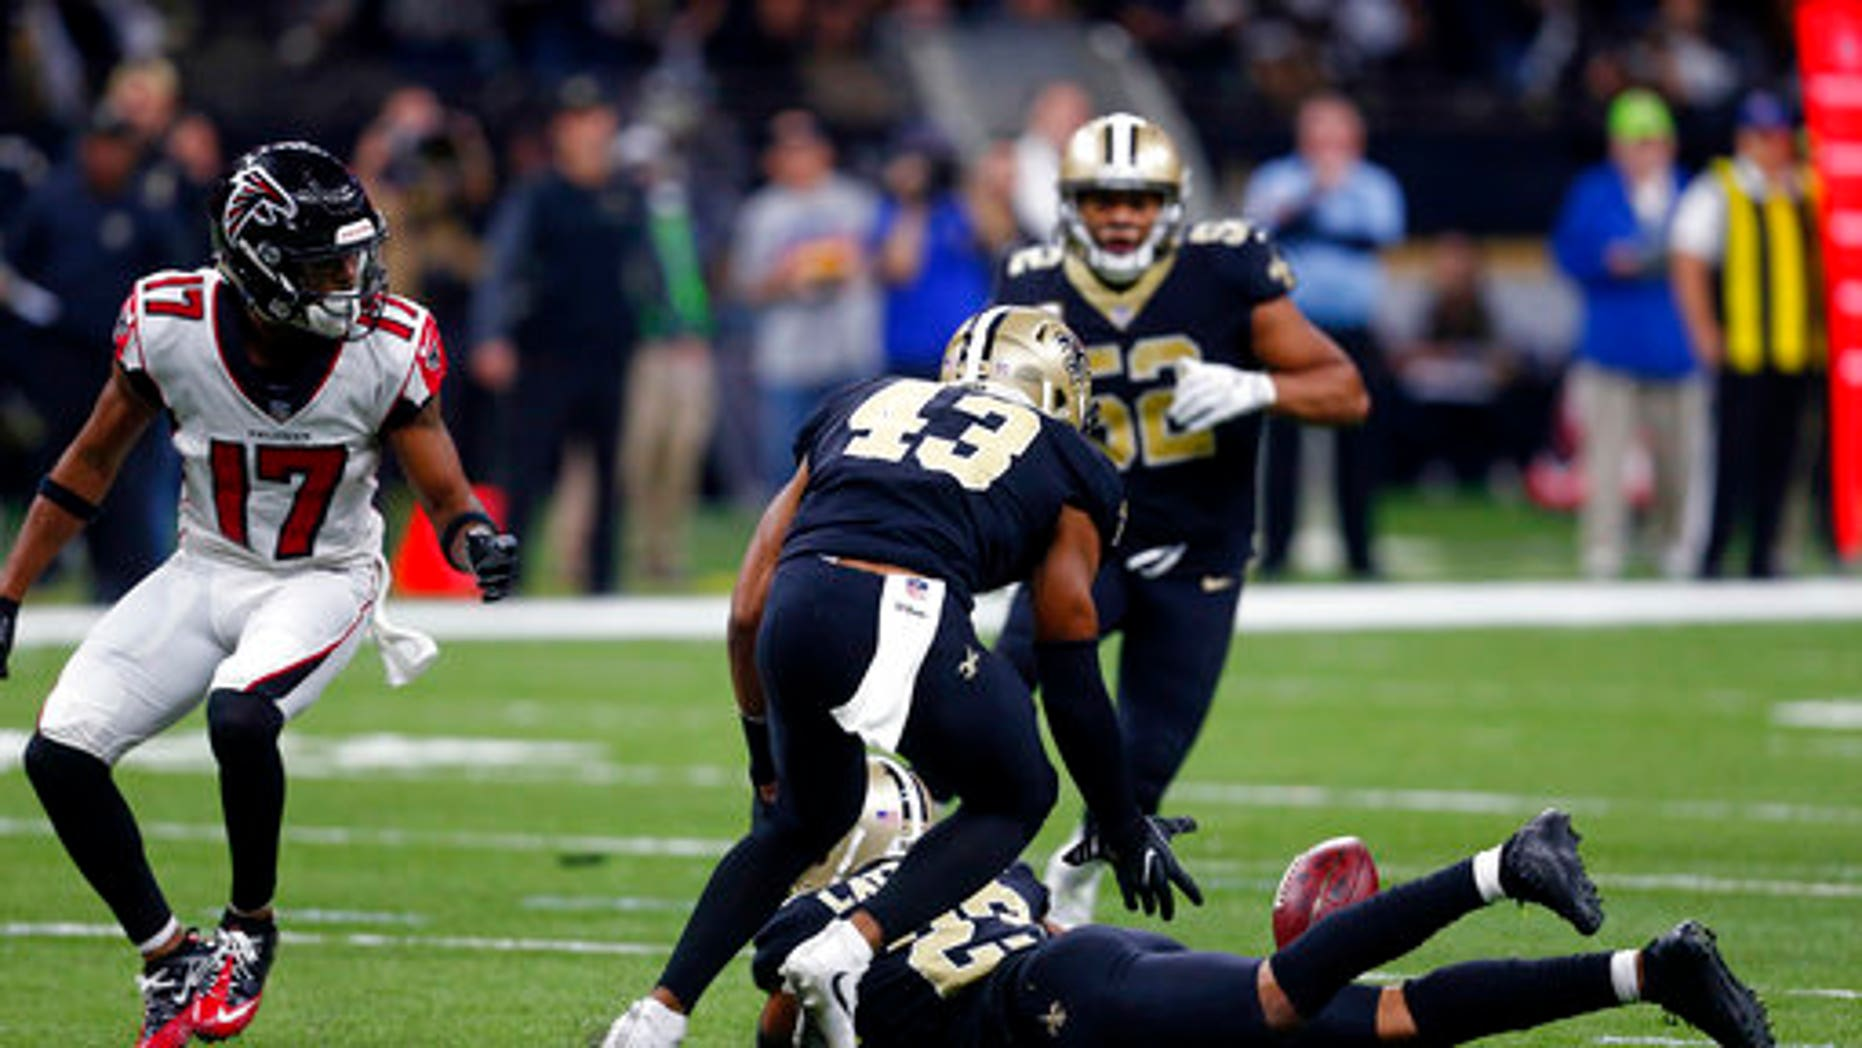 New Orleans Saints free safety Marcus Williams (43) scoops up an interception as the ball lands on the back of cornerback Marshon Lattimore.